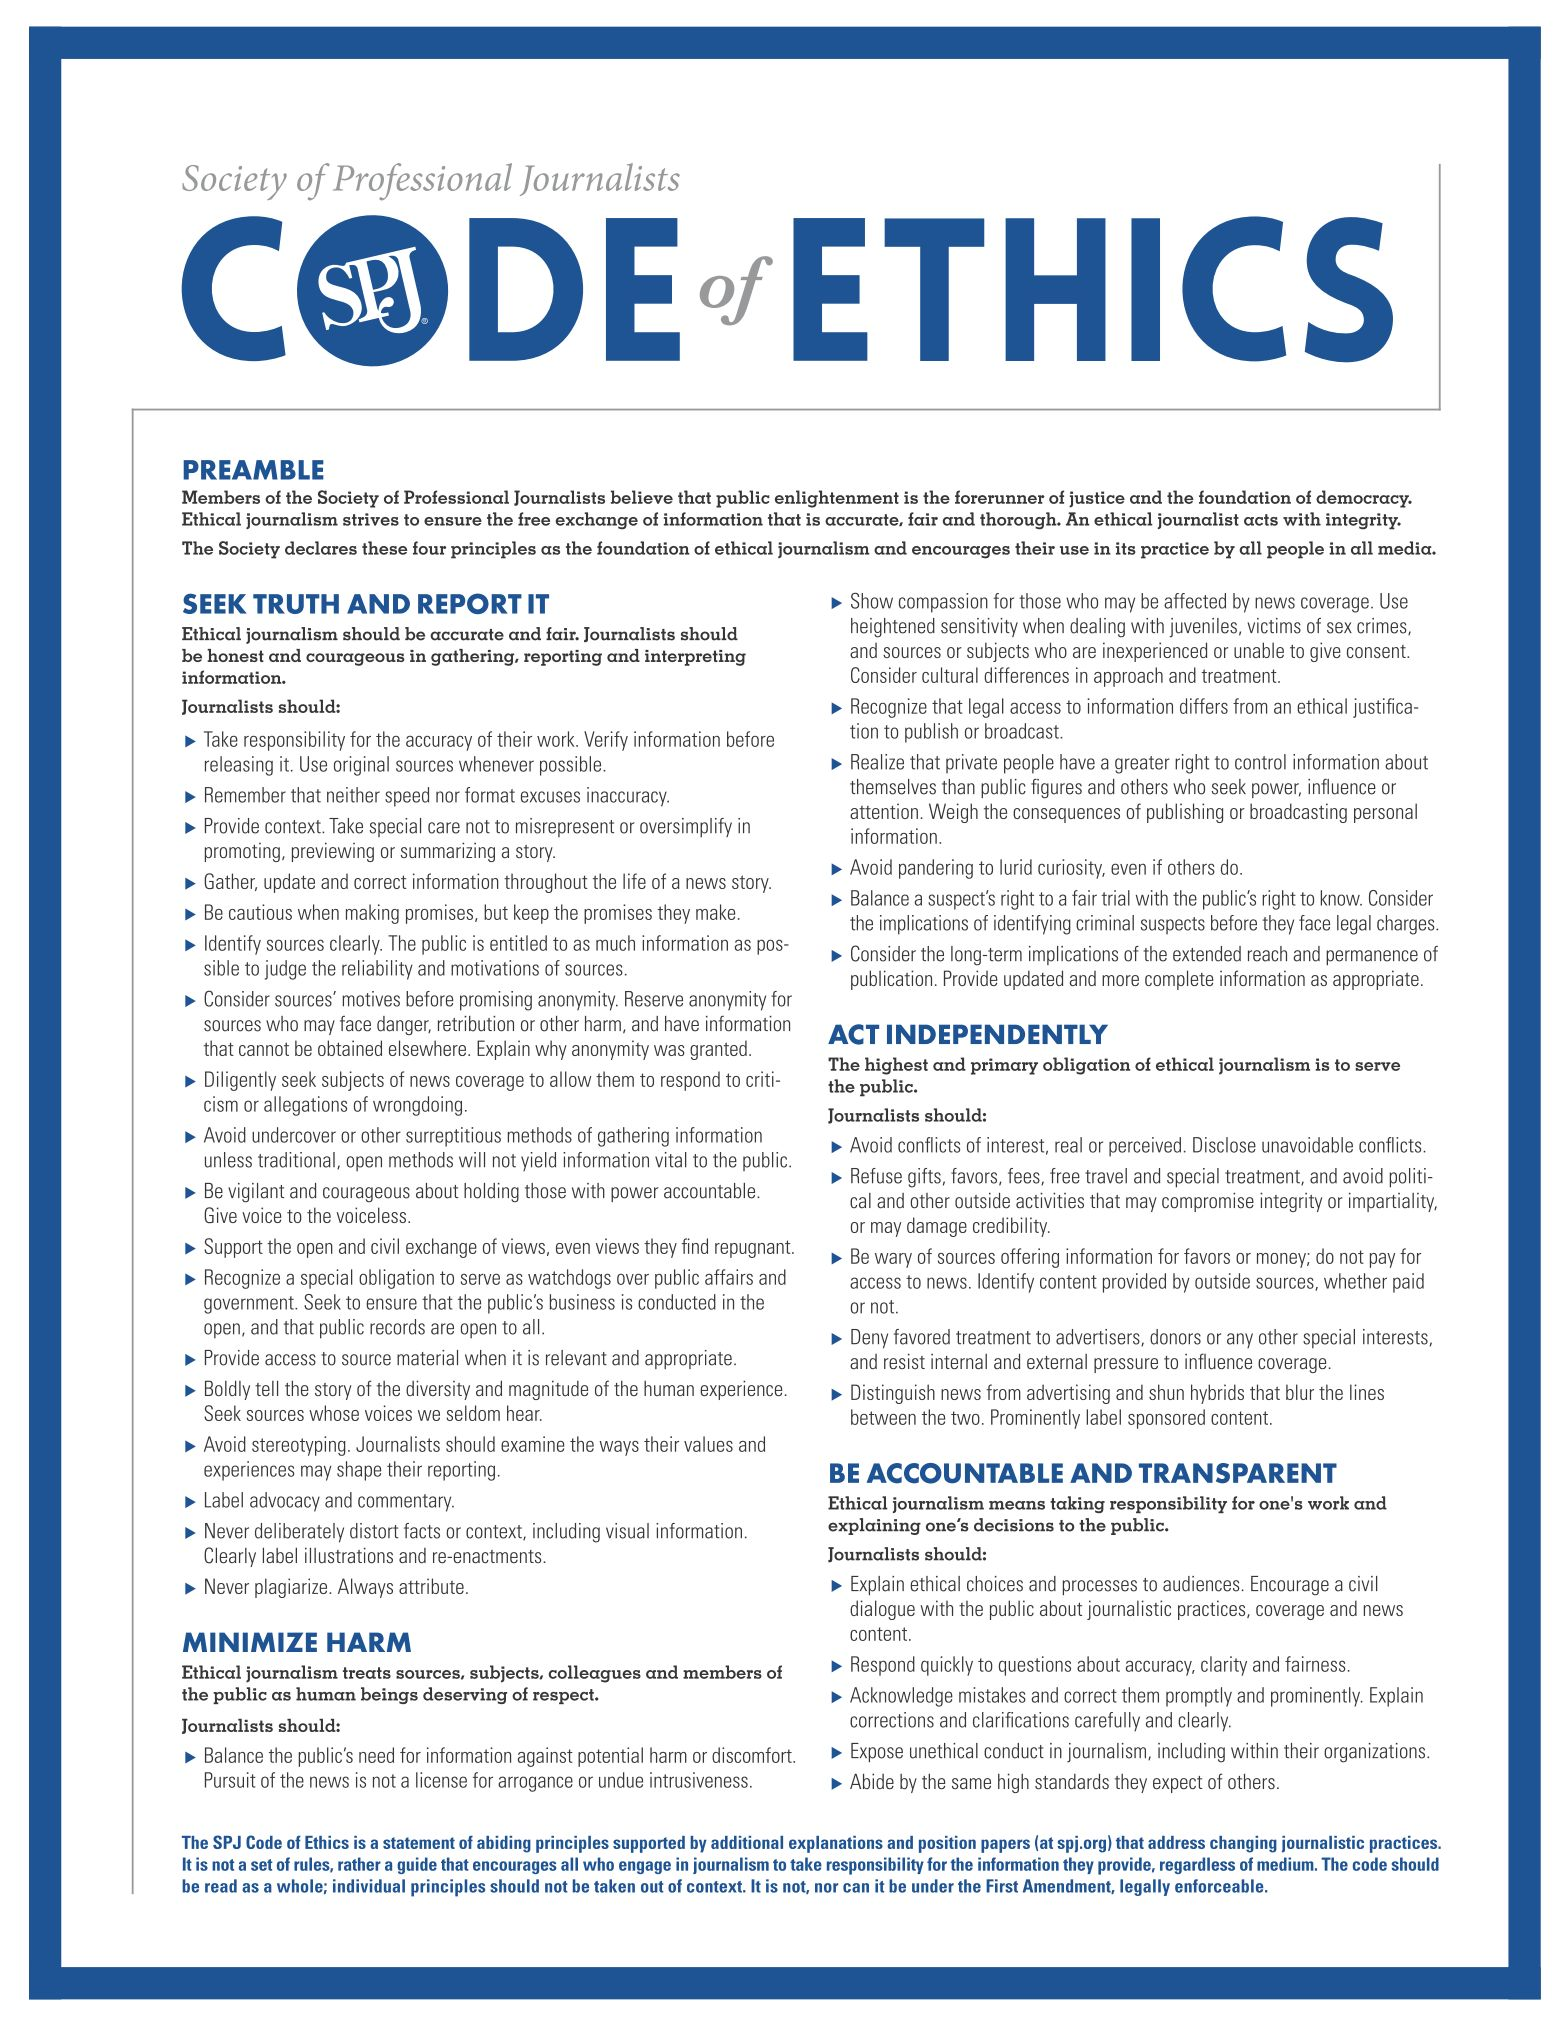 Society of Professional Journalists - Code of Ethics